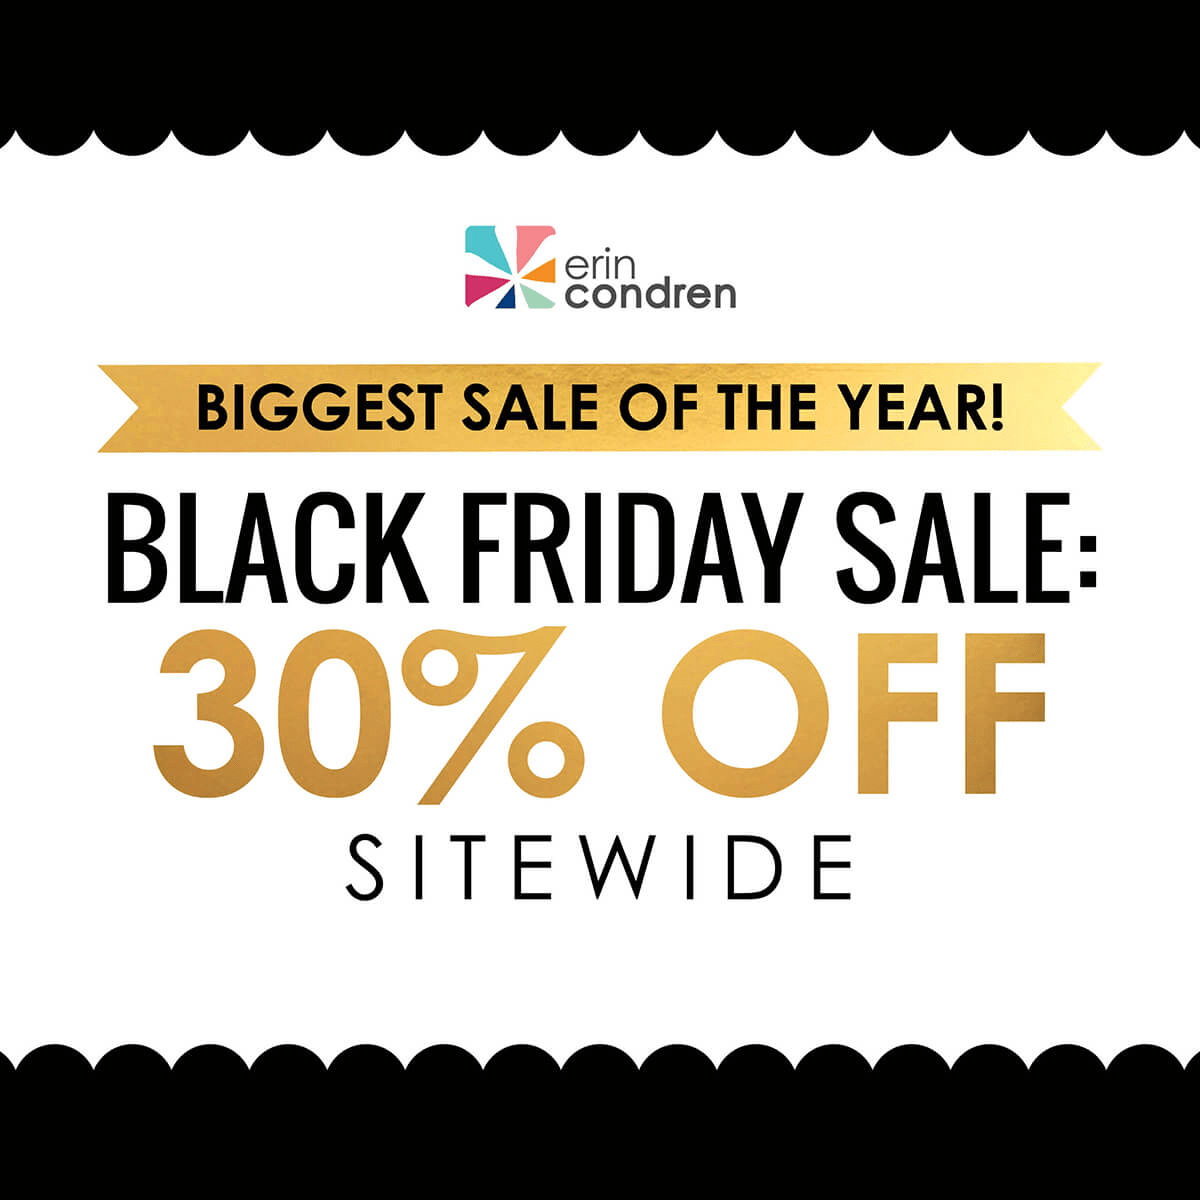 Don't Miss Erin Condren Black Friday Savings: Get 30% Off Sitewide!